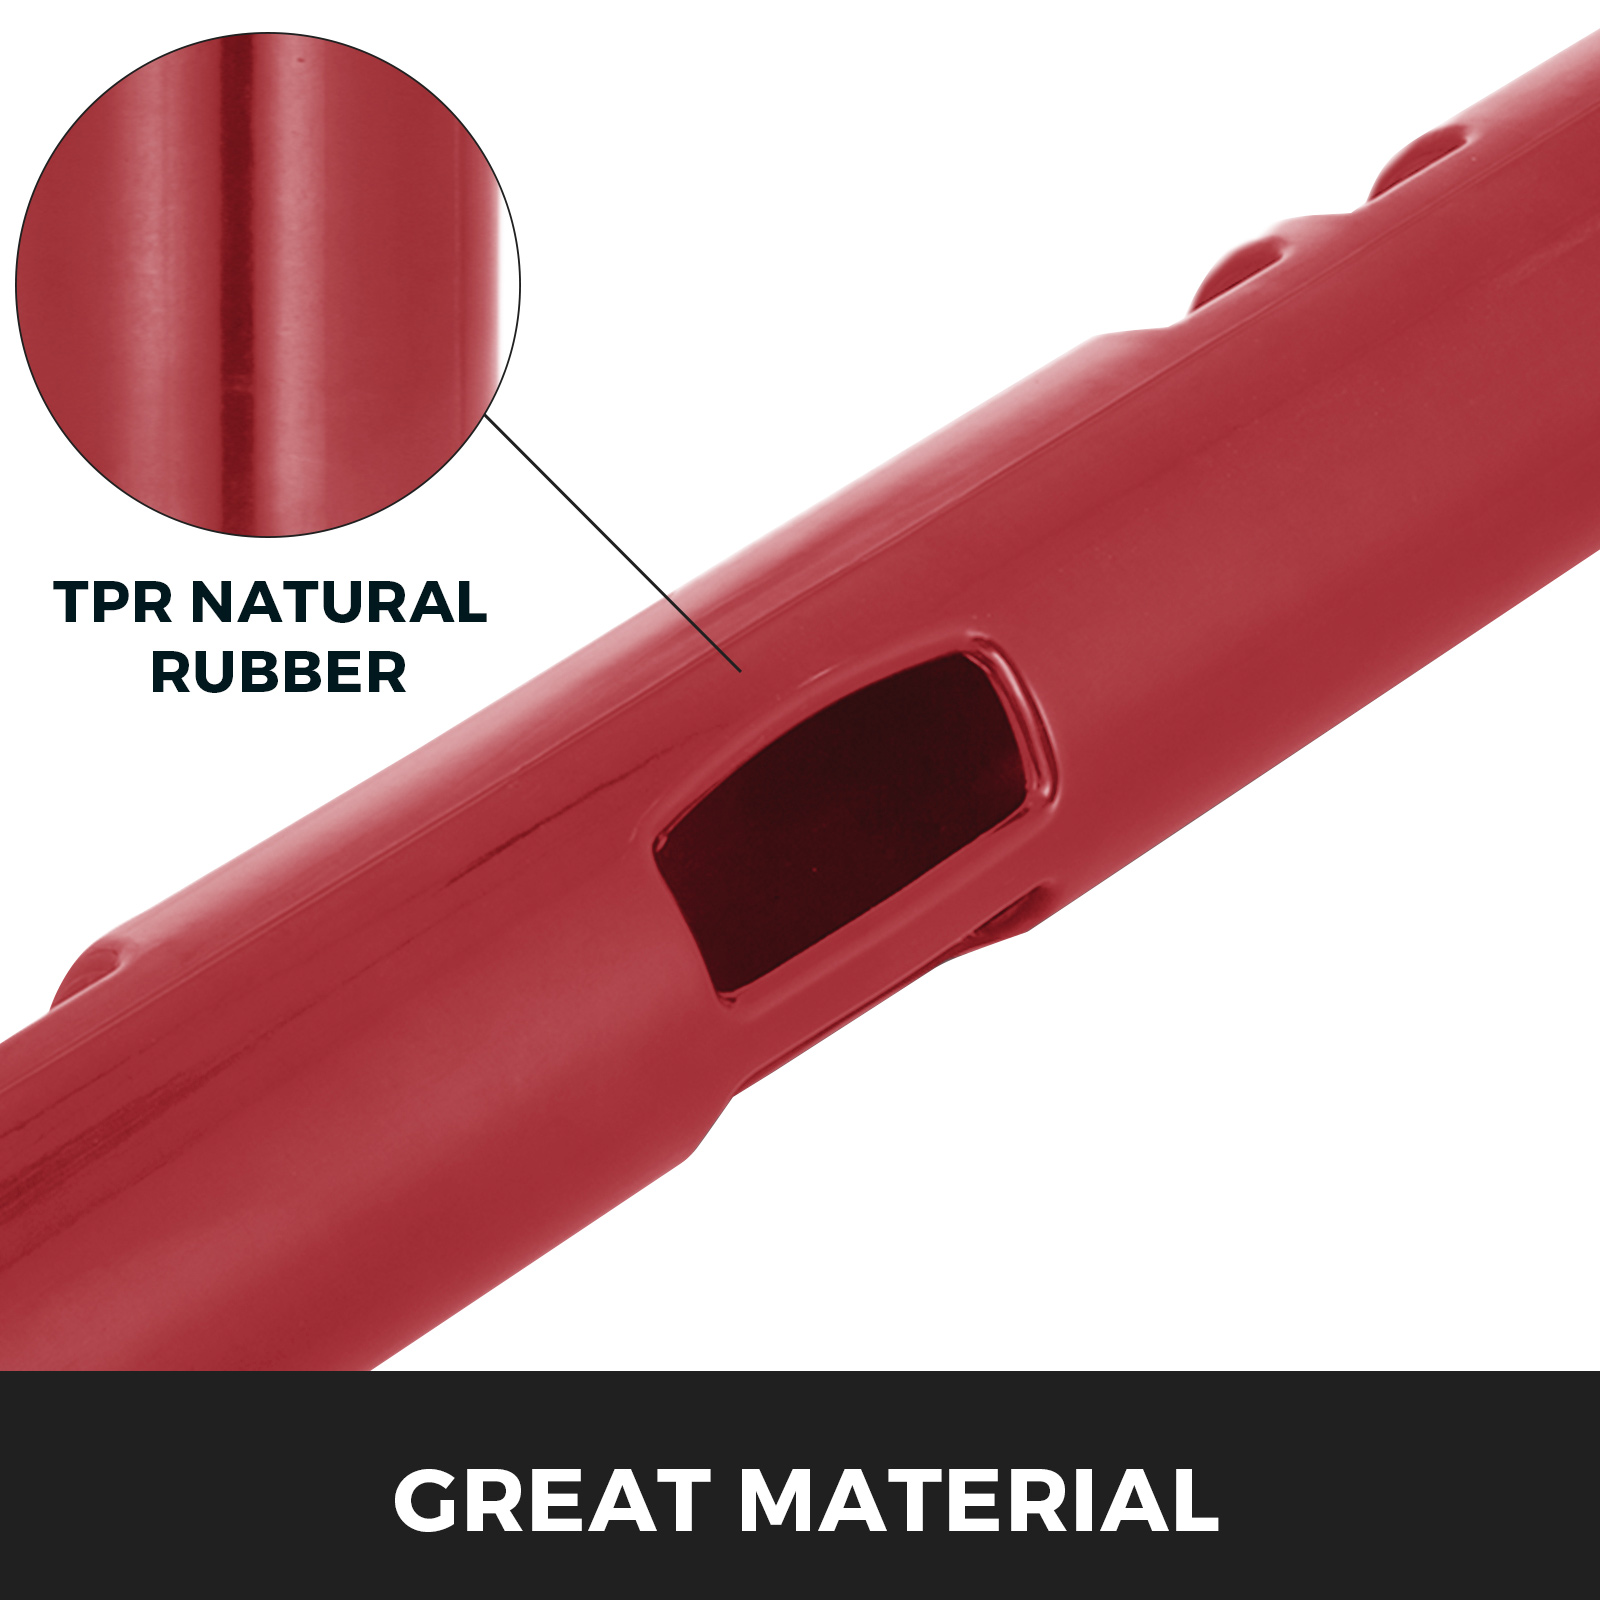 Vipr-Fitpro-Fitness-Tube-Loaded-Movement-Training-weightlifting-4-6-8-10-12-Kg thumbnail 110